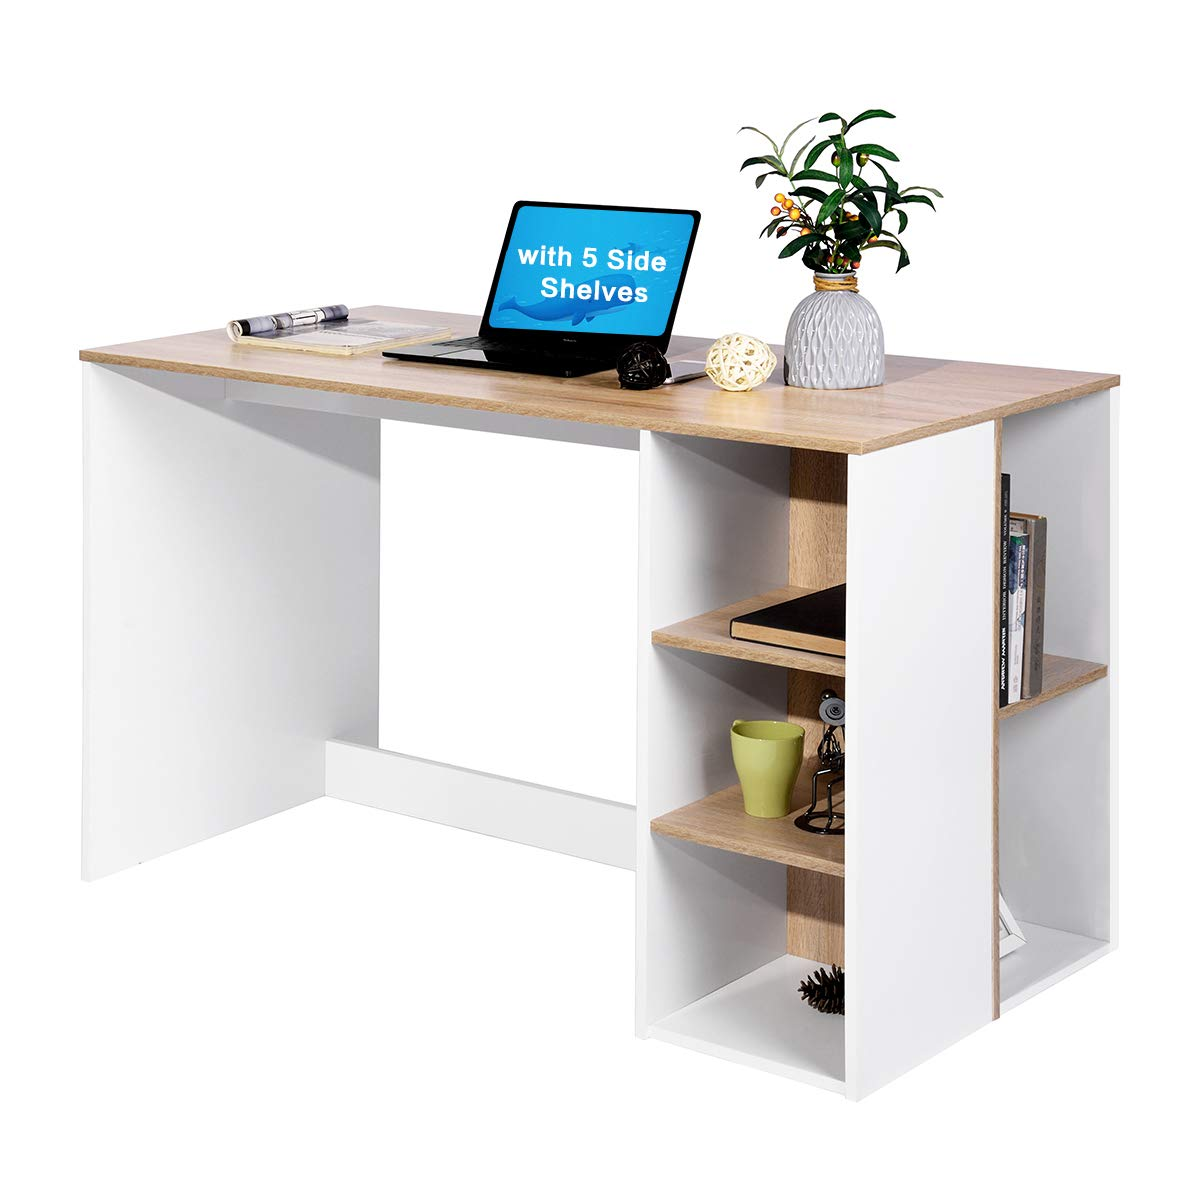 Coavas Office-Computer Desk with Storage, Study-Work Desk with 5 Shelves, Students-Writing Desk Home Laptop Study Table Modern Wood Hutch Large Workstation with Bookcase BREN11 /Beech and White